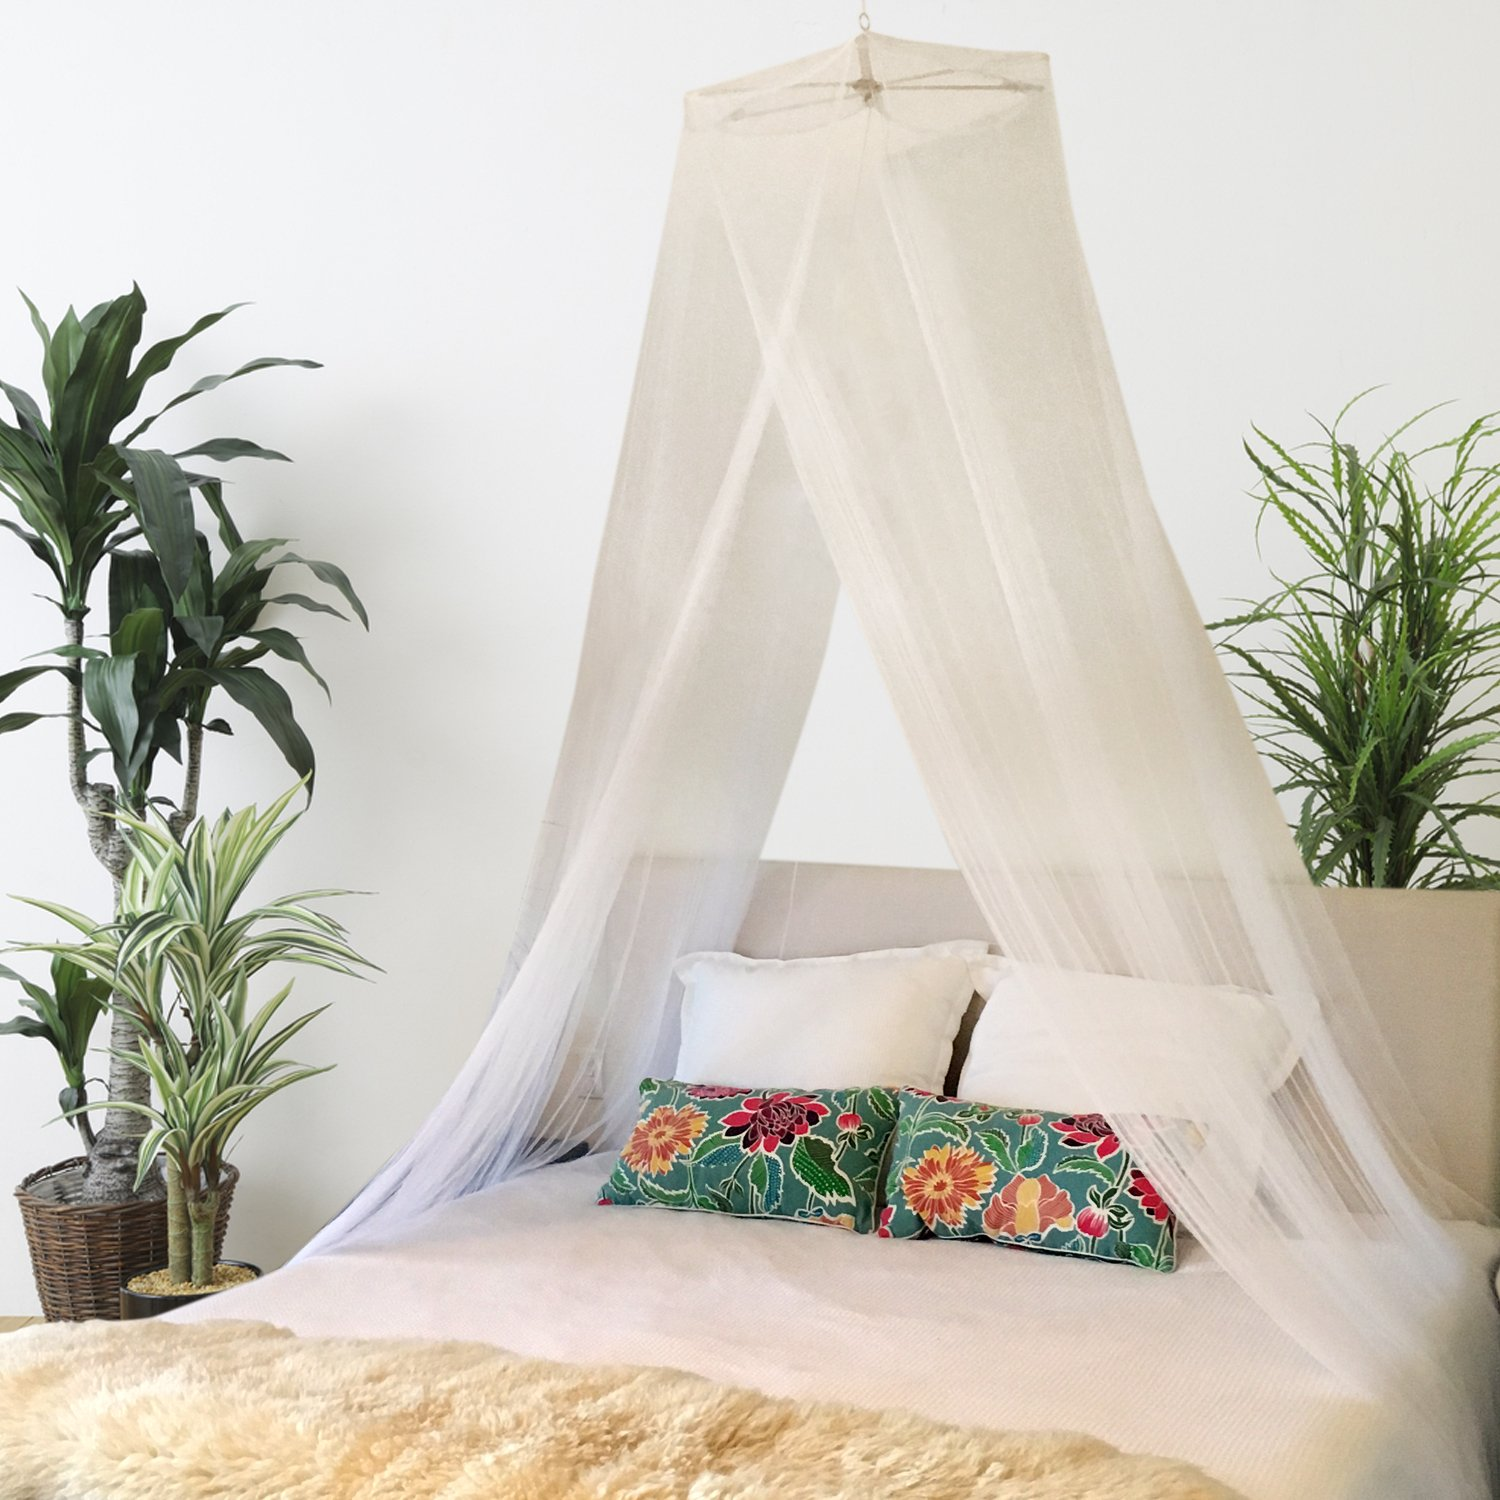 Canopy bed curtains ikea - Boho Beach Luxury Mosquito Net Bed Canopy 3 Bonus Hanging Decorative Gifts Glamorous